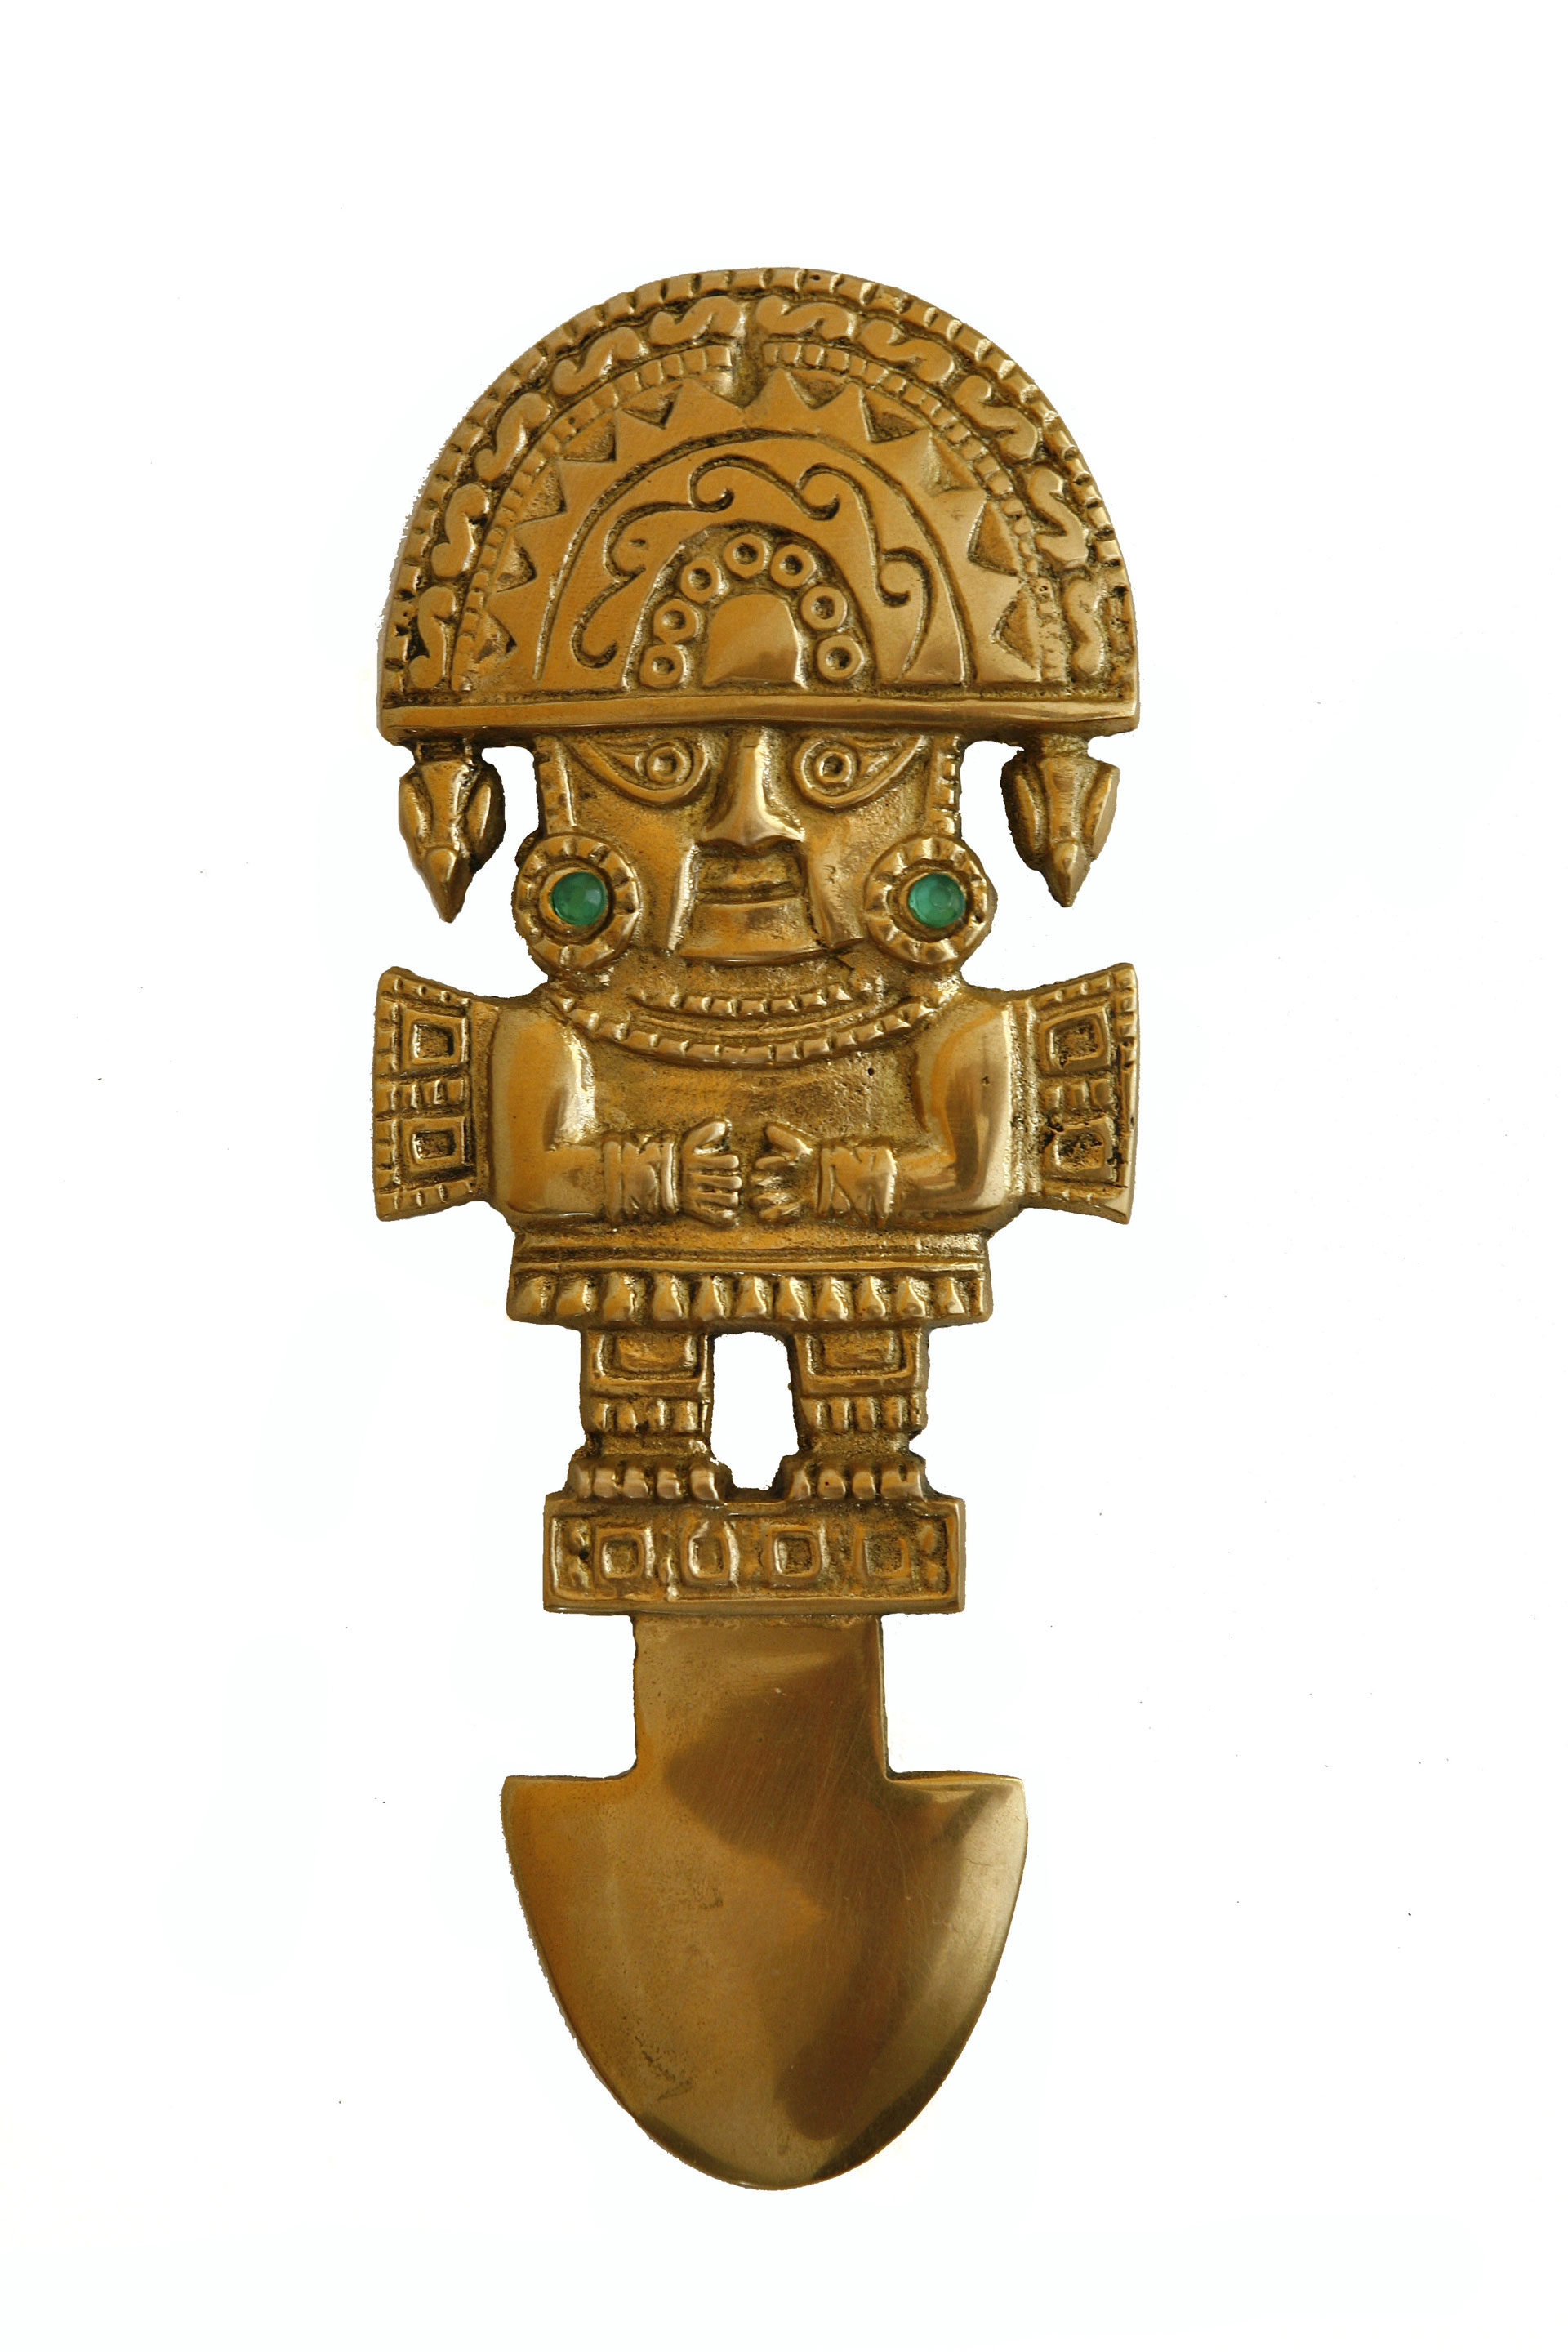 South American gold figure